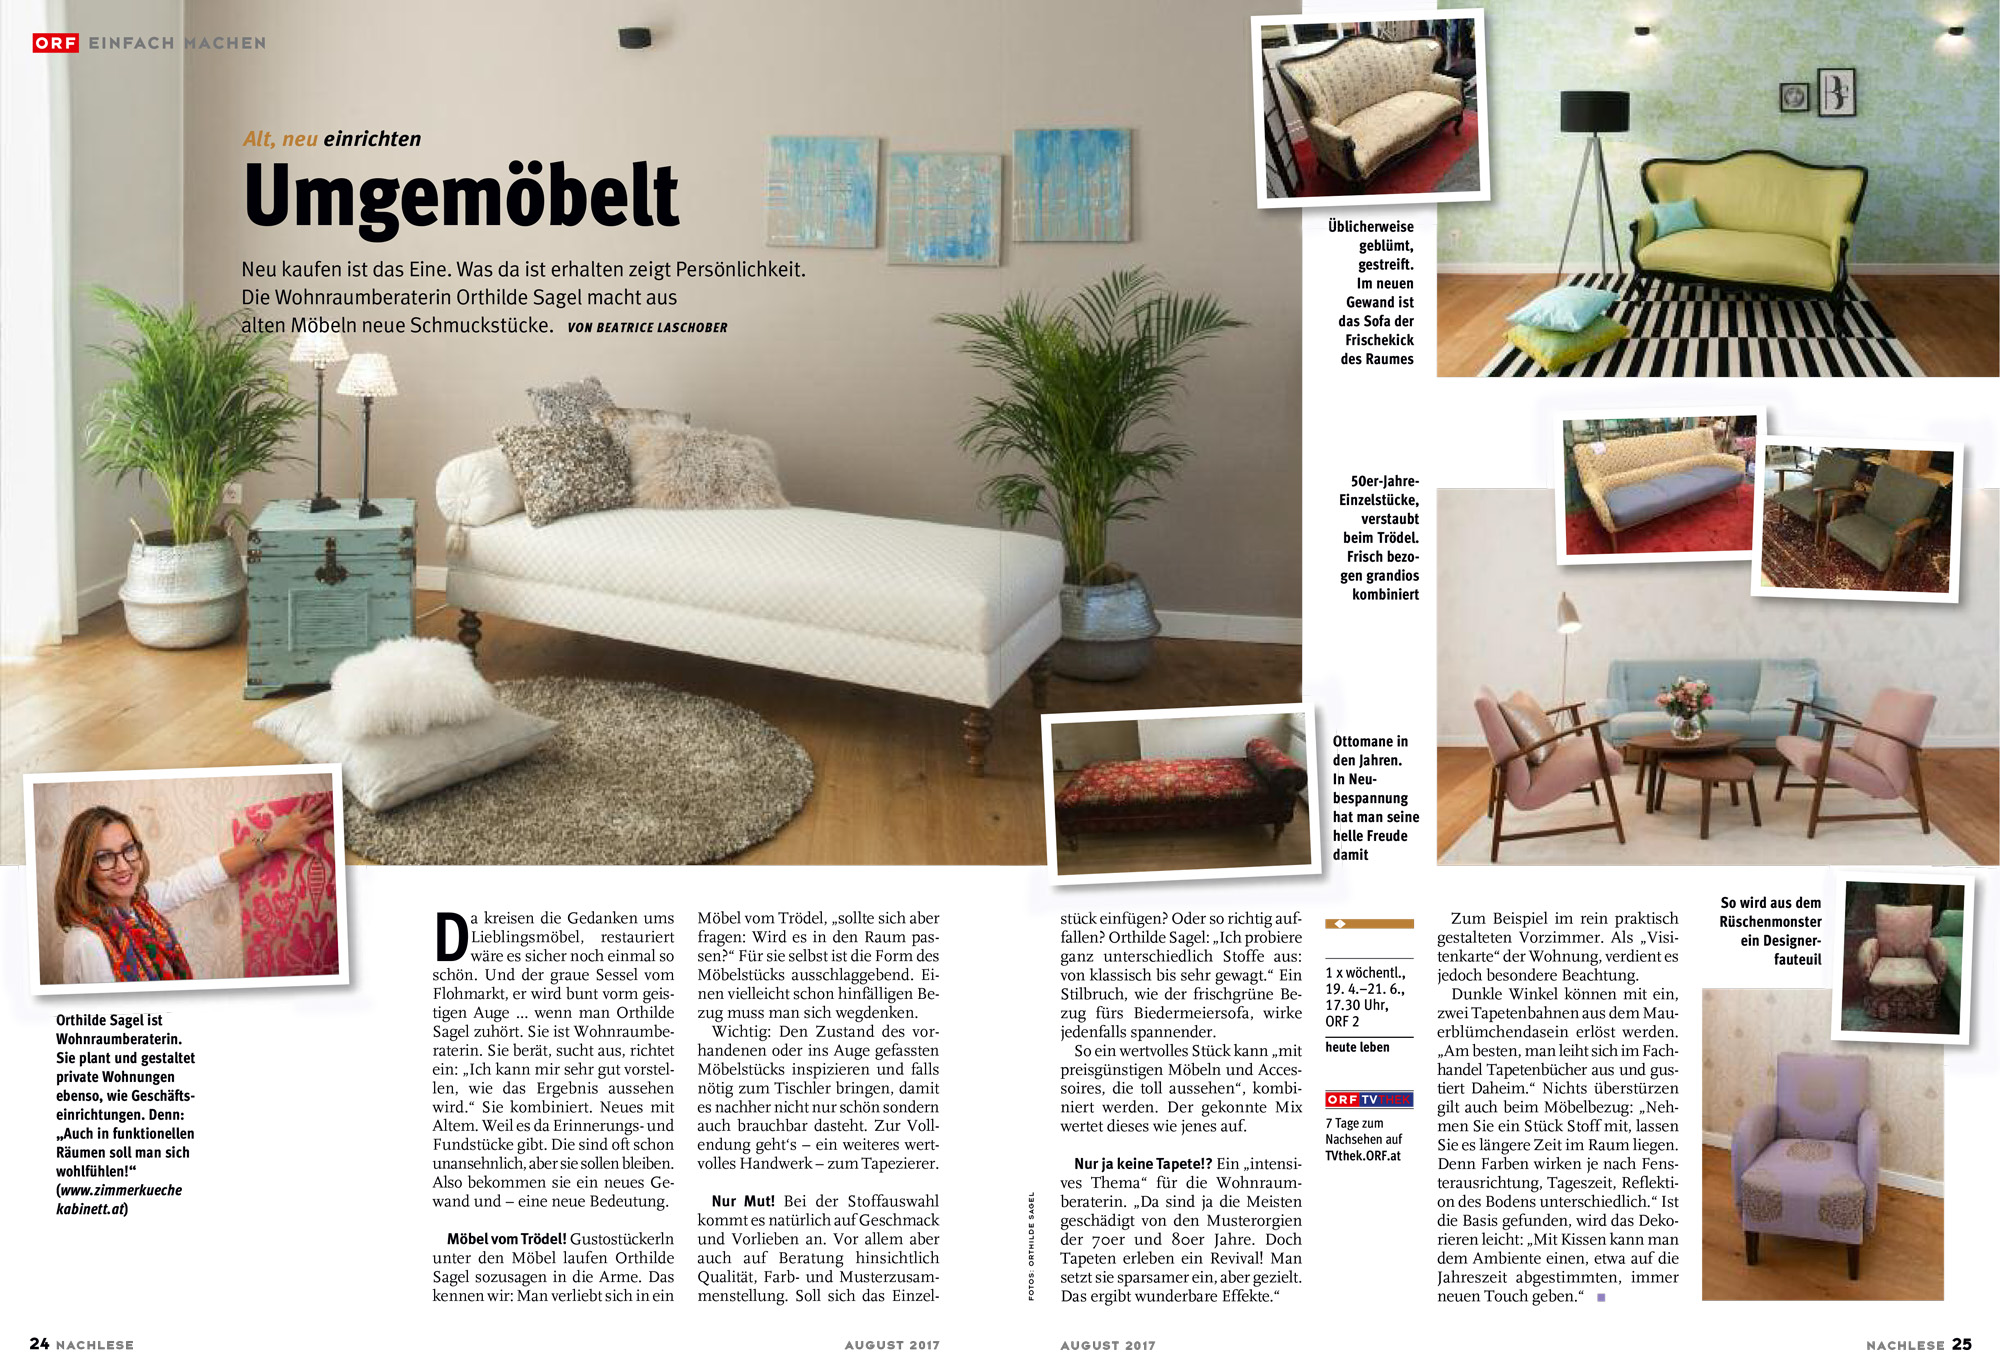 ORF Nachlese August 2017